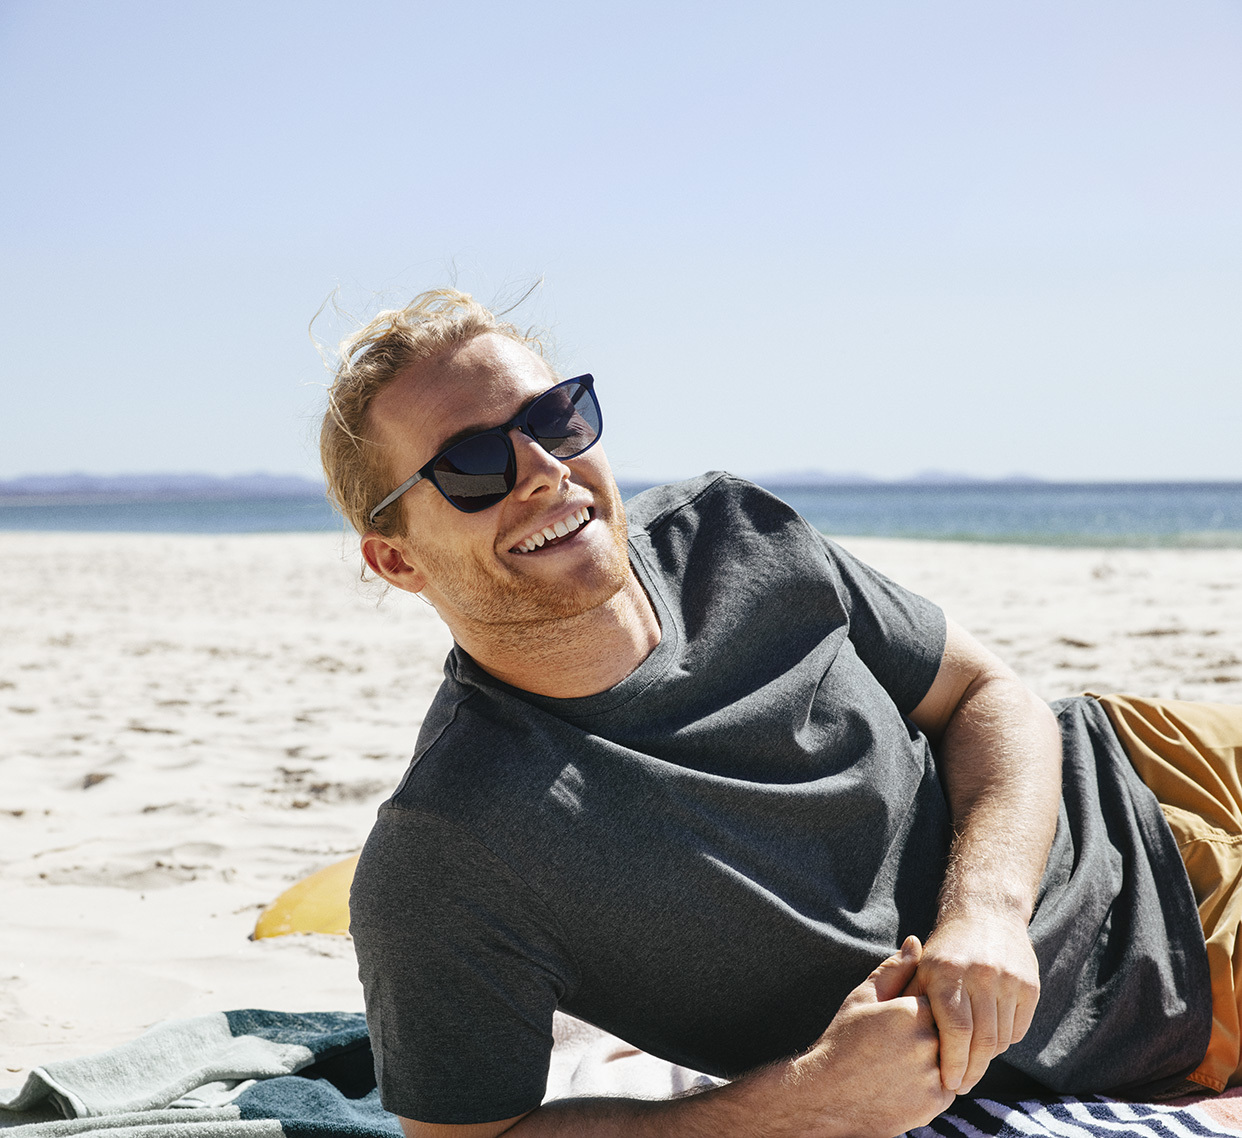 Man on beach wearing sunglasses